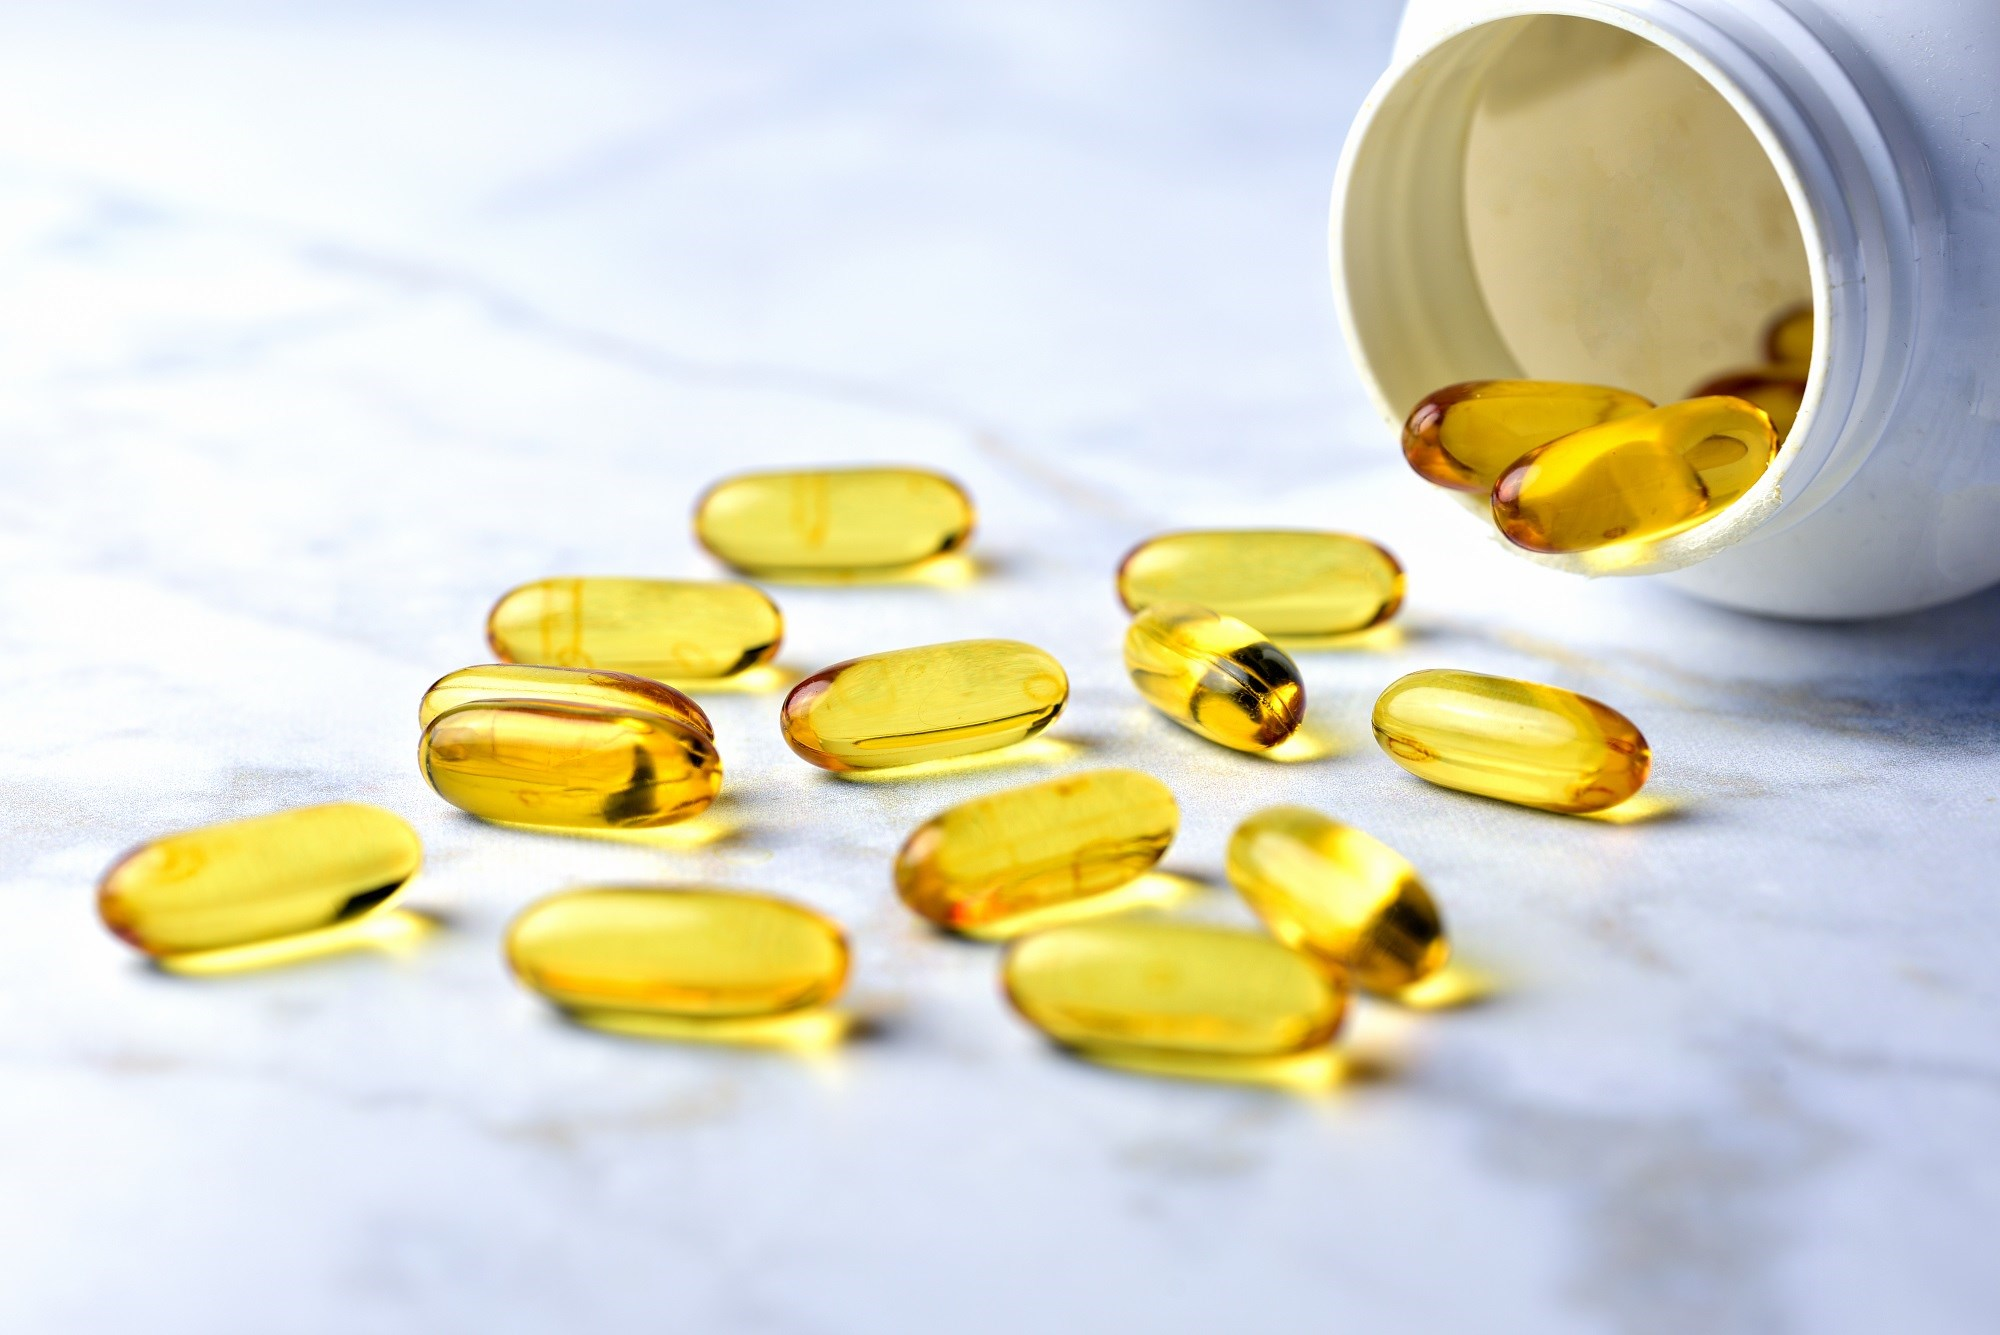 Omega-3 Polyunsaturated Fatty Acids Associated With Reduction in Anxiety Symptoms